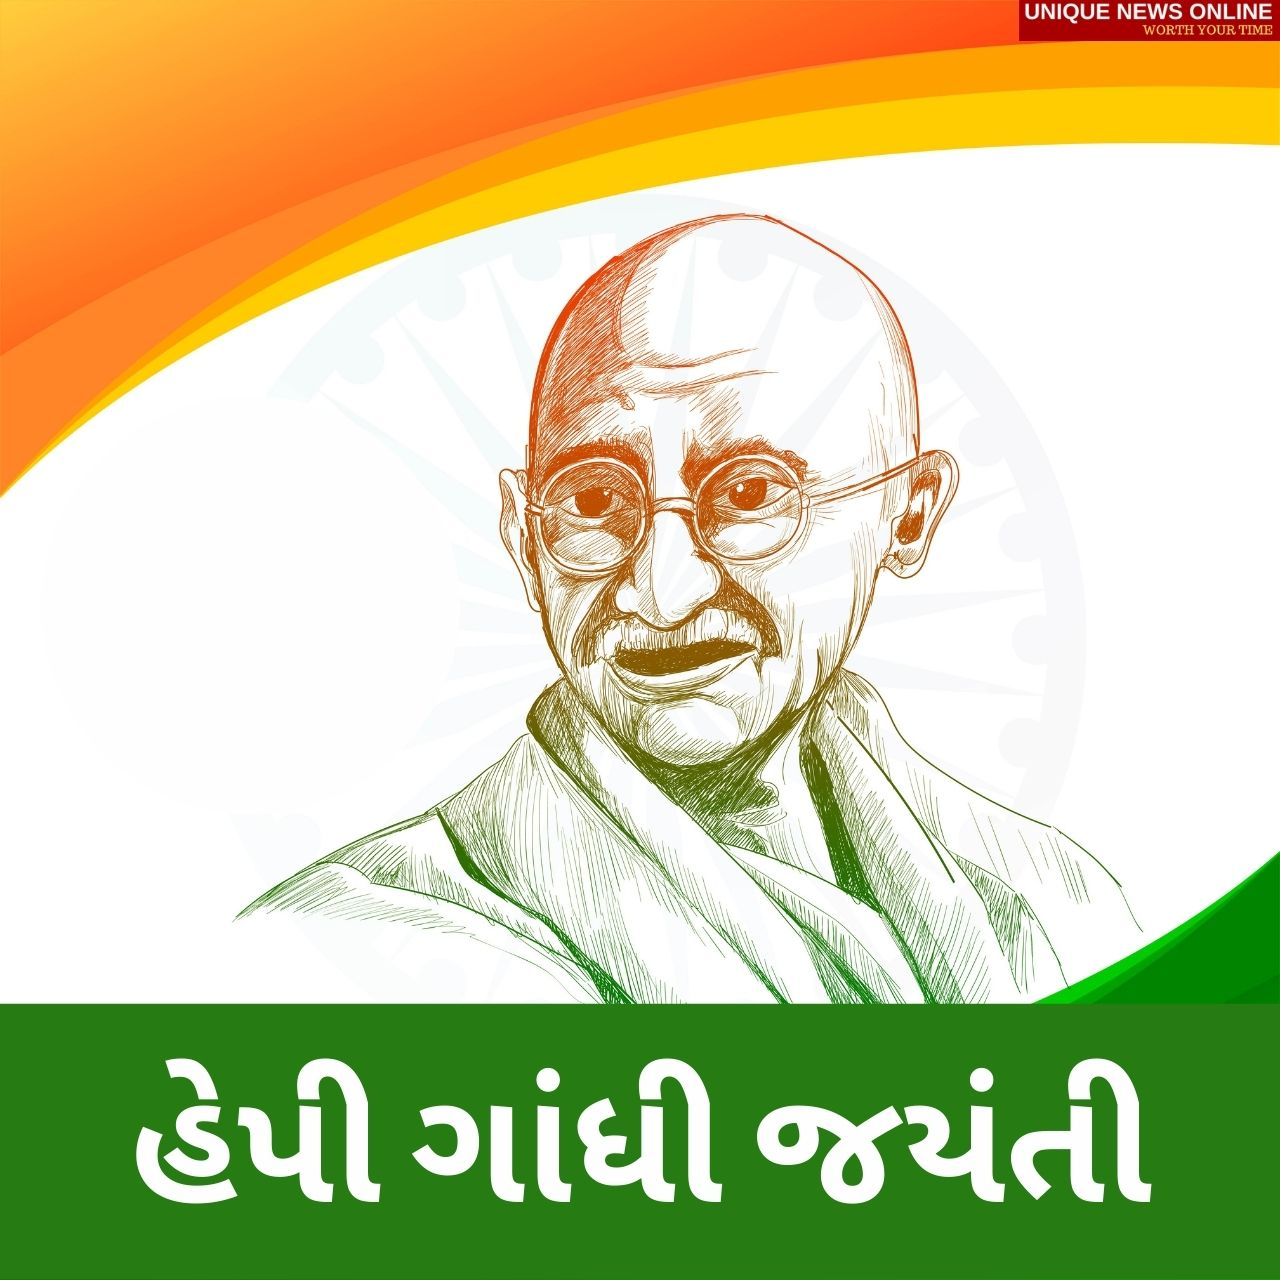 Gandhi Jayanti 2021 Gujarati Wishes, Quotes, Messages, Greetings, and HD Images to share